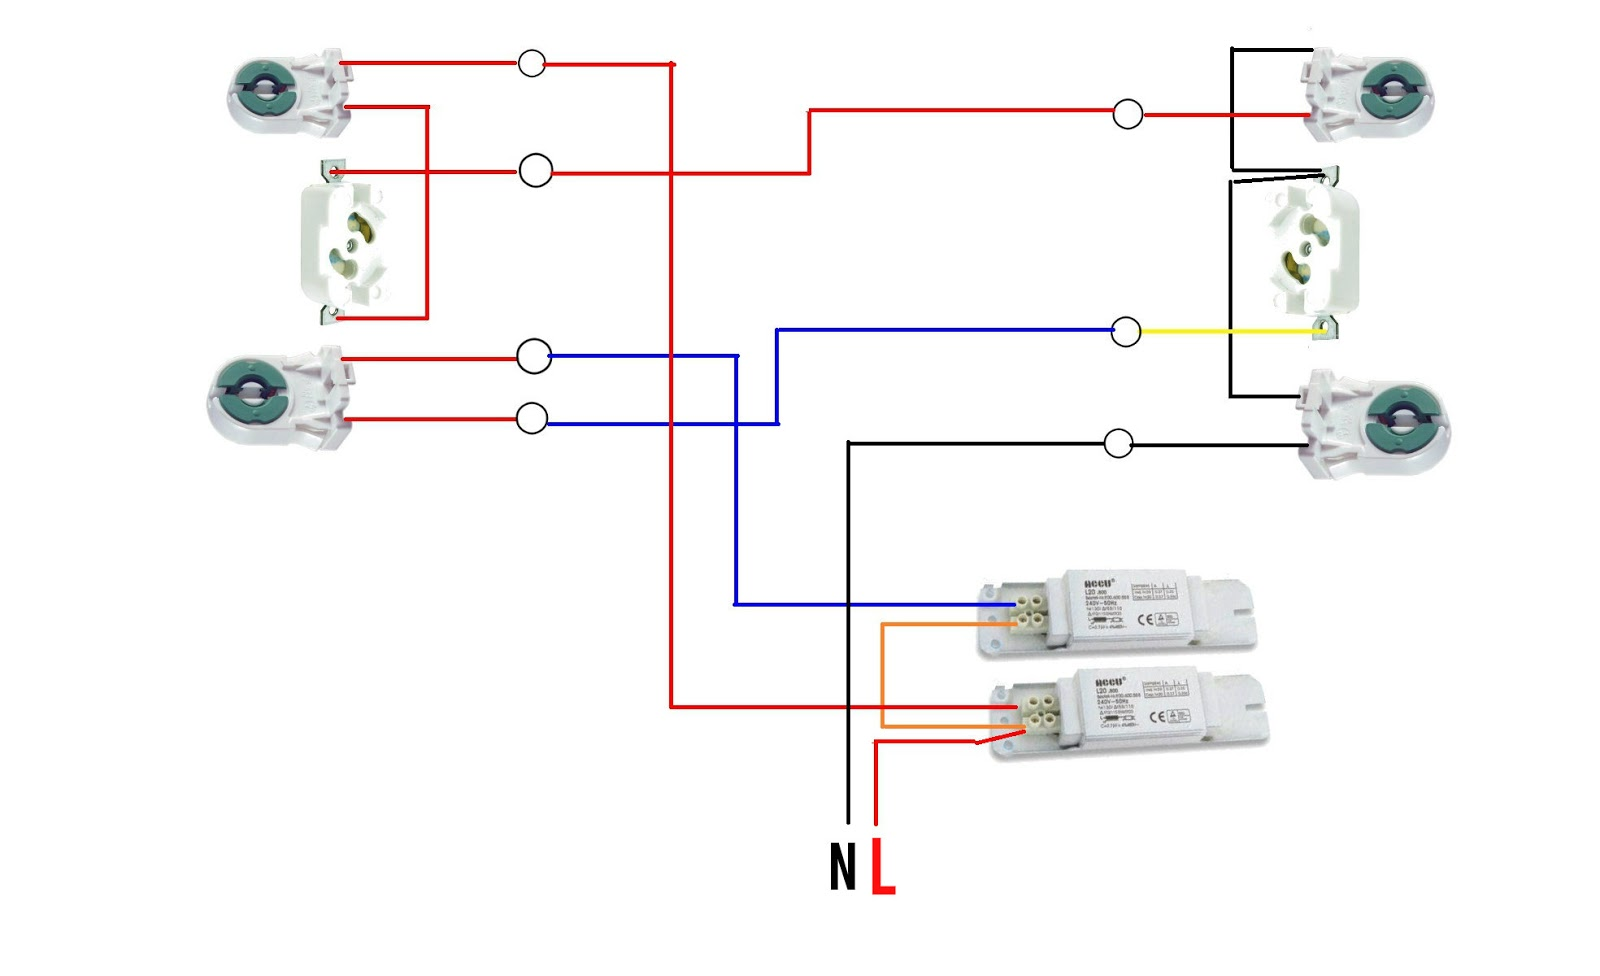 Wiring Diagram Of A Fluorescent Light Ballast : Wiring a metalux light fixture t